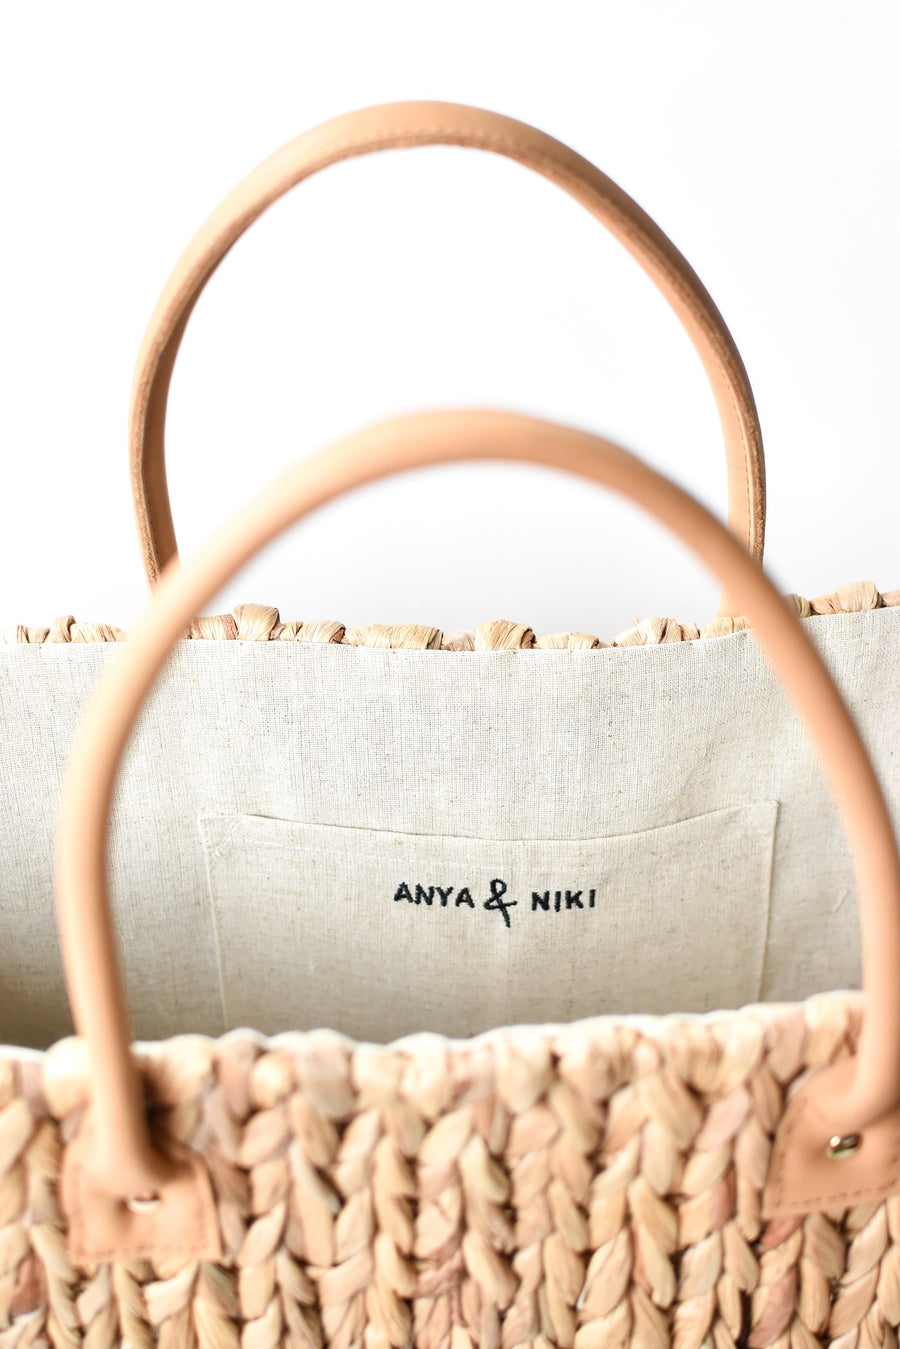 Close up of tan leather handles on large natural hyacinth straw tote.